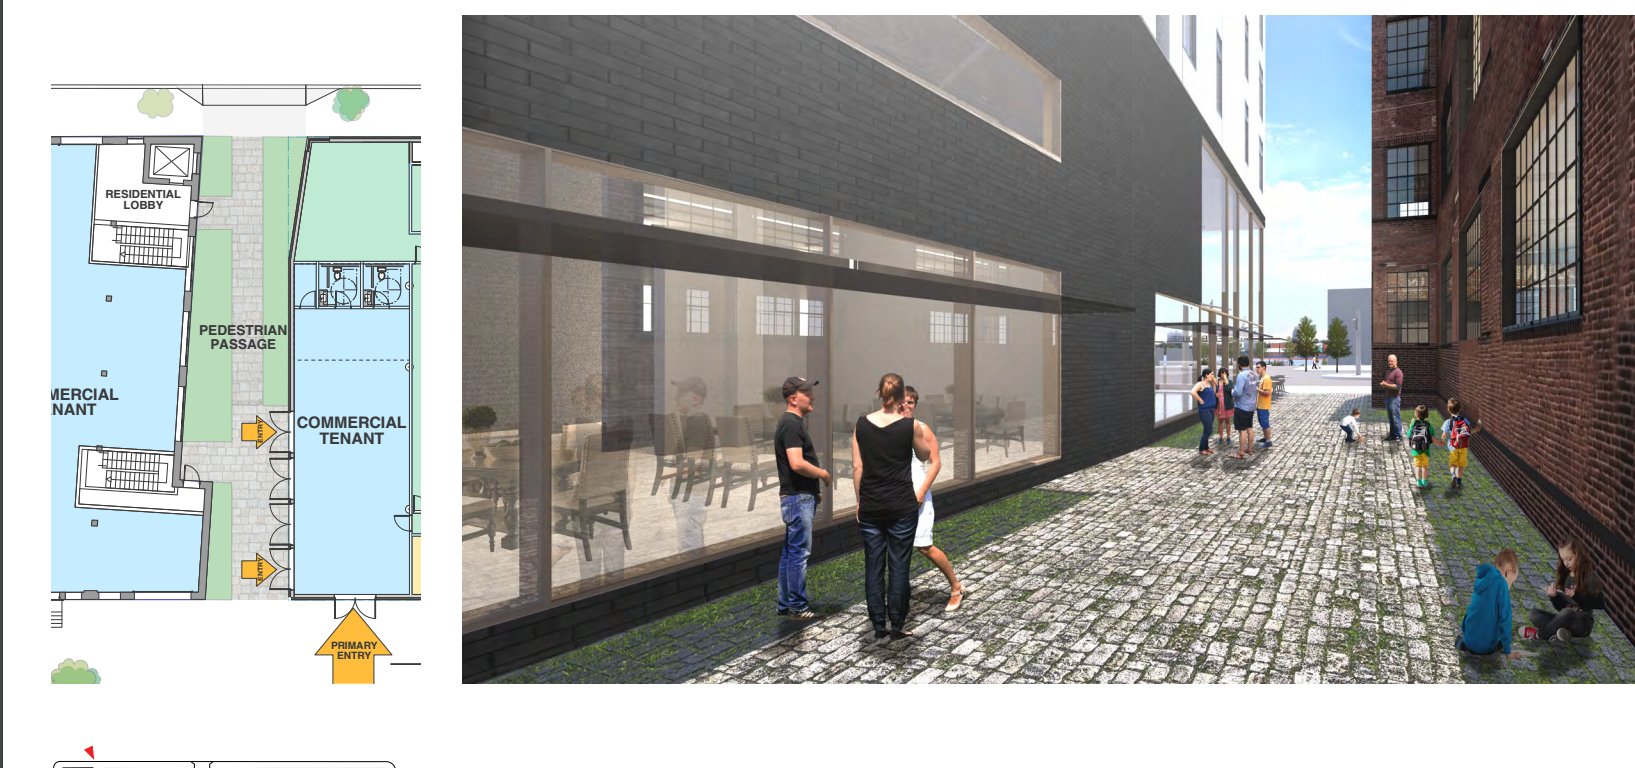 1100 N. Delaware Ave: passage between new construction and old Corner building | Stanev Potts Architects, Nov. 2016 CDR presentation